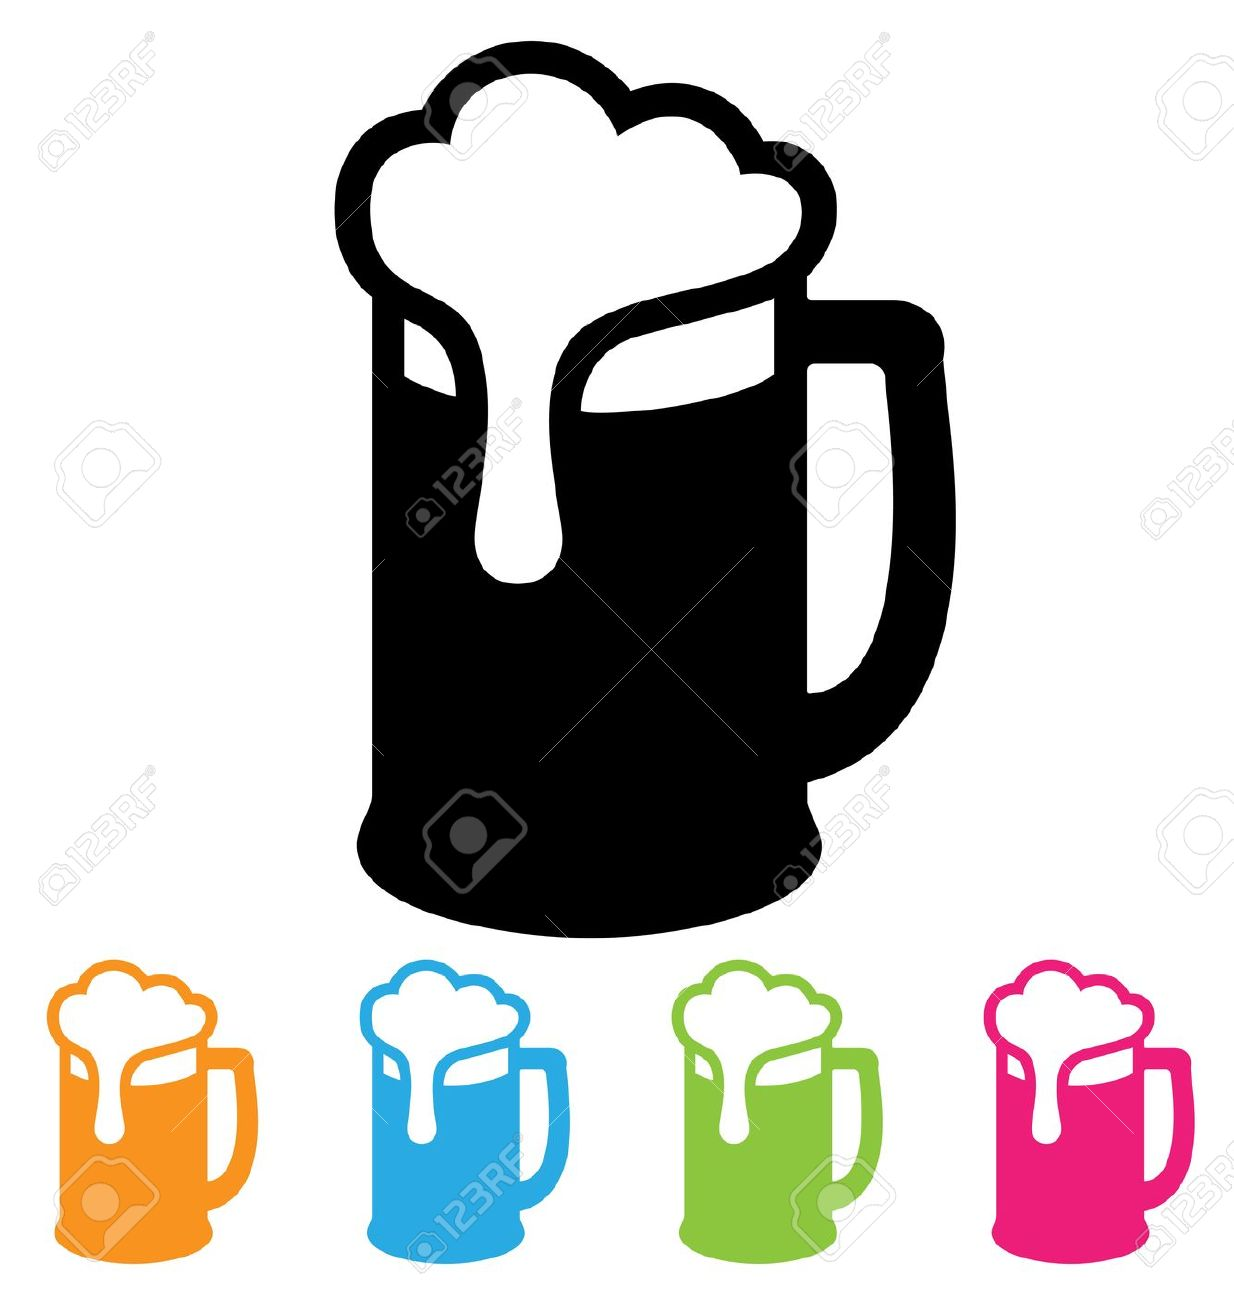 beer vector silhouette at getdrawings com free for personal use rh getdrawings com beer vector mechanics beer vector mechanics for engineers 11th pdf